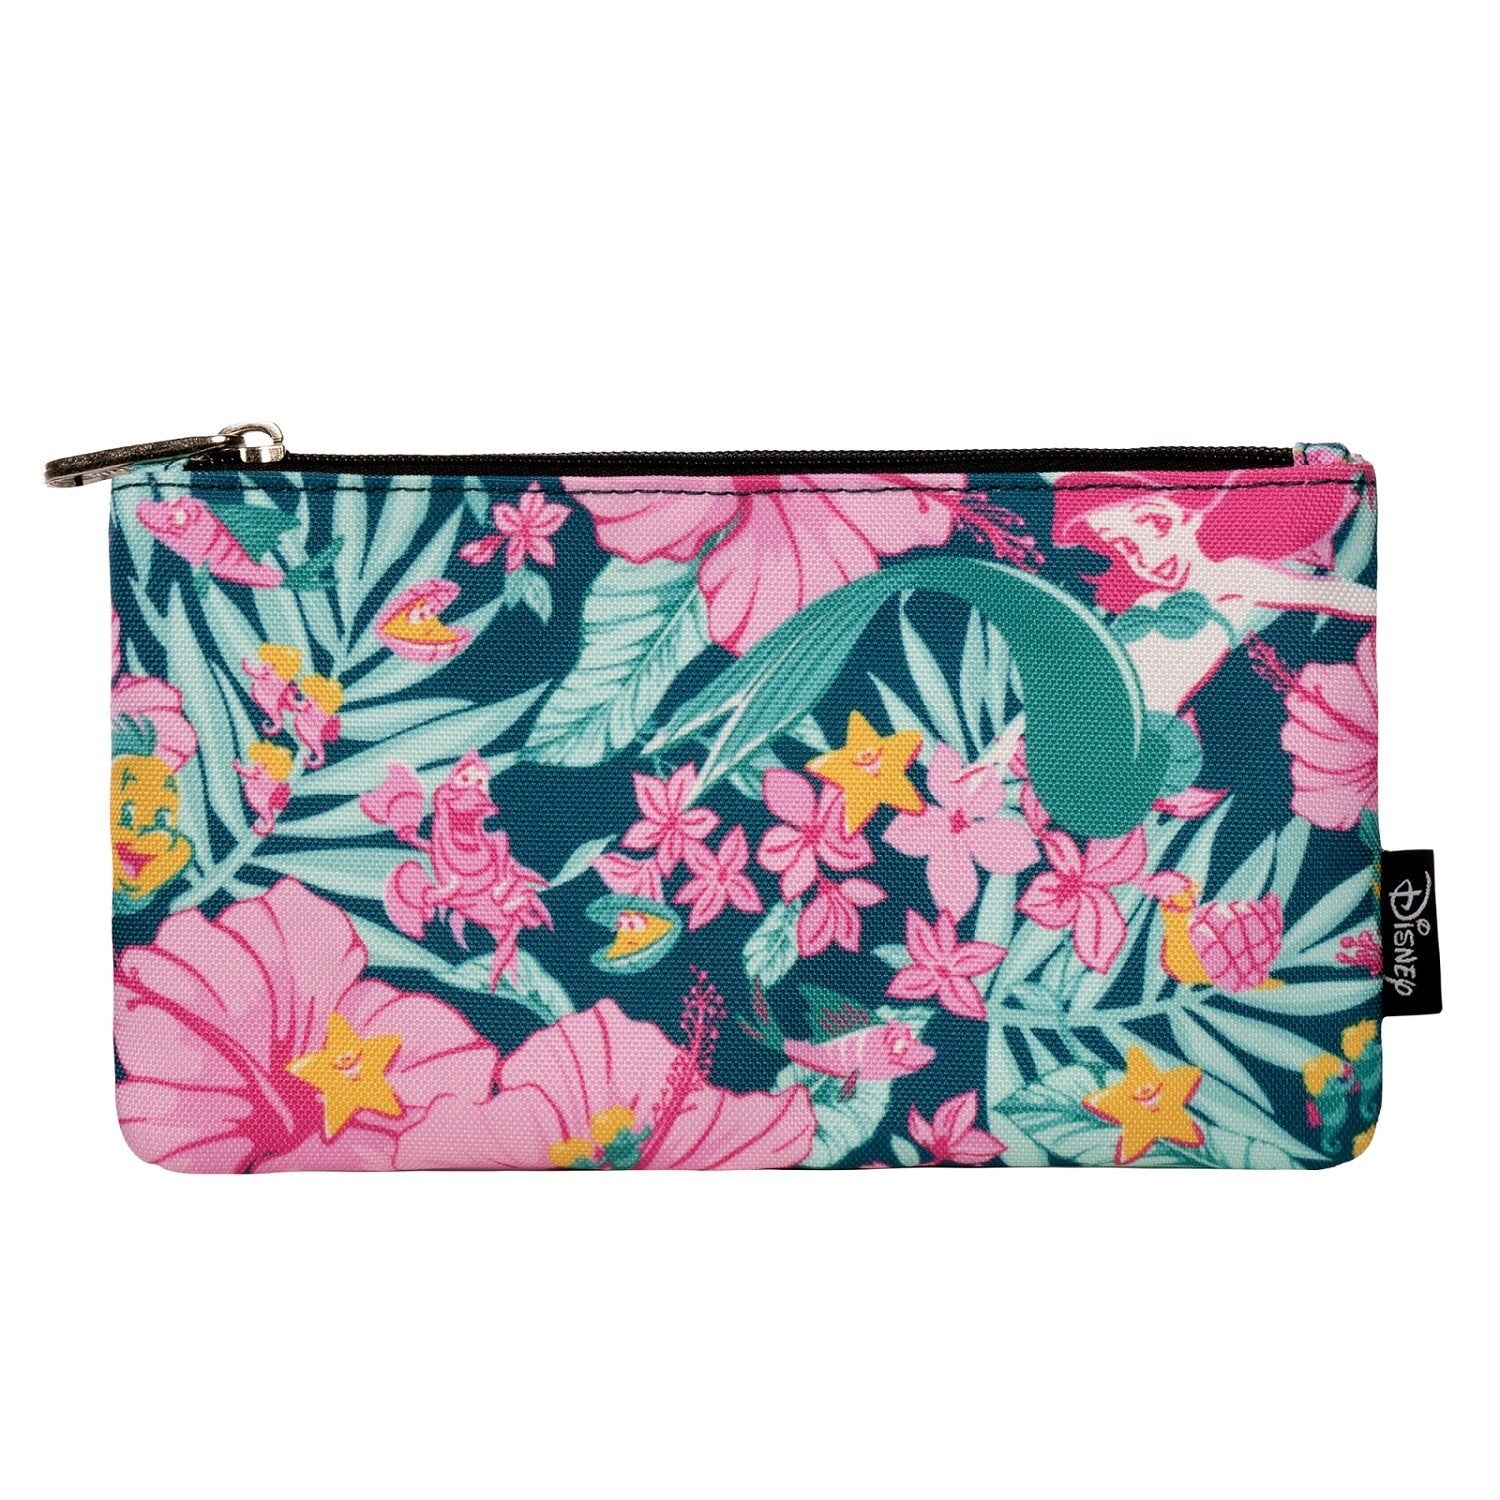 Loungefly x Ariel Hibiscus Print Coin/Cosmetic Bag